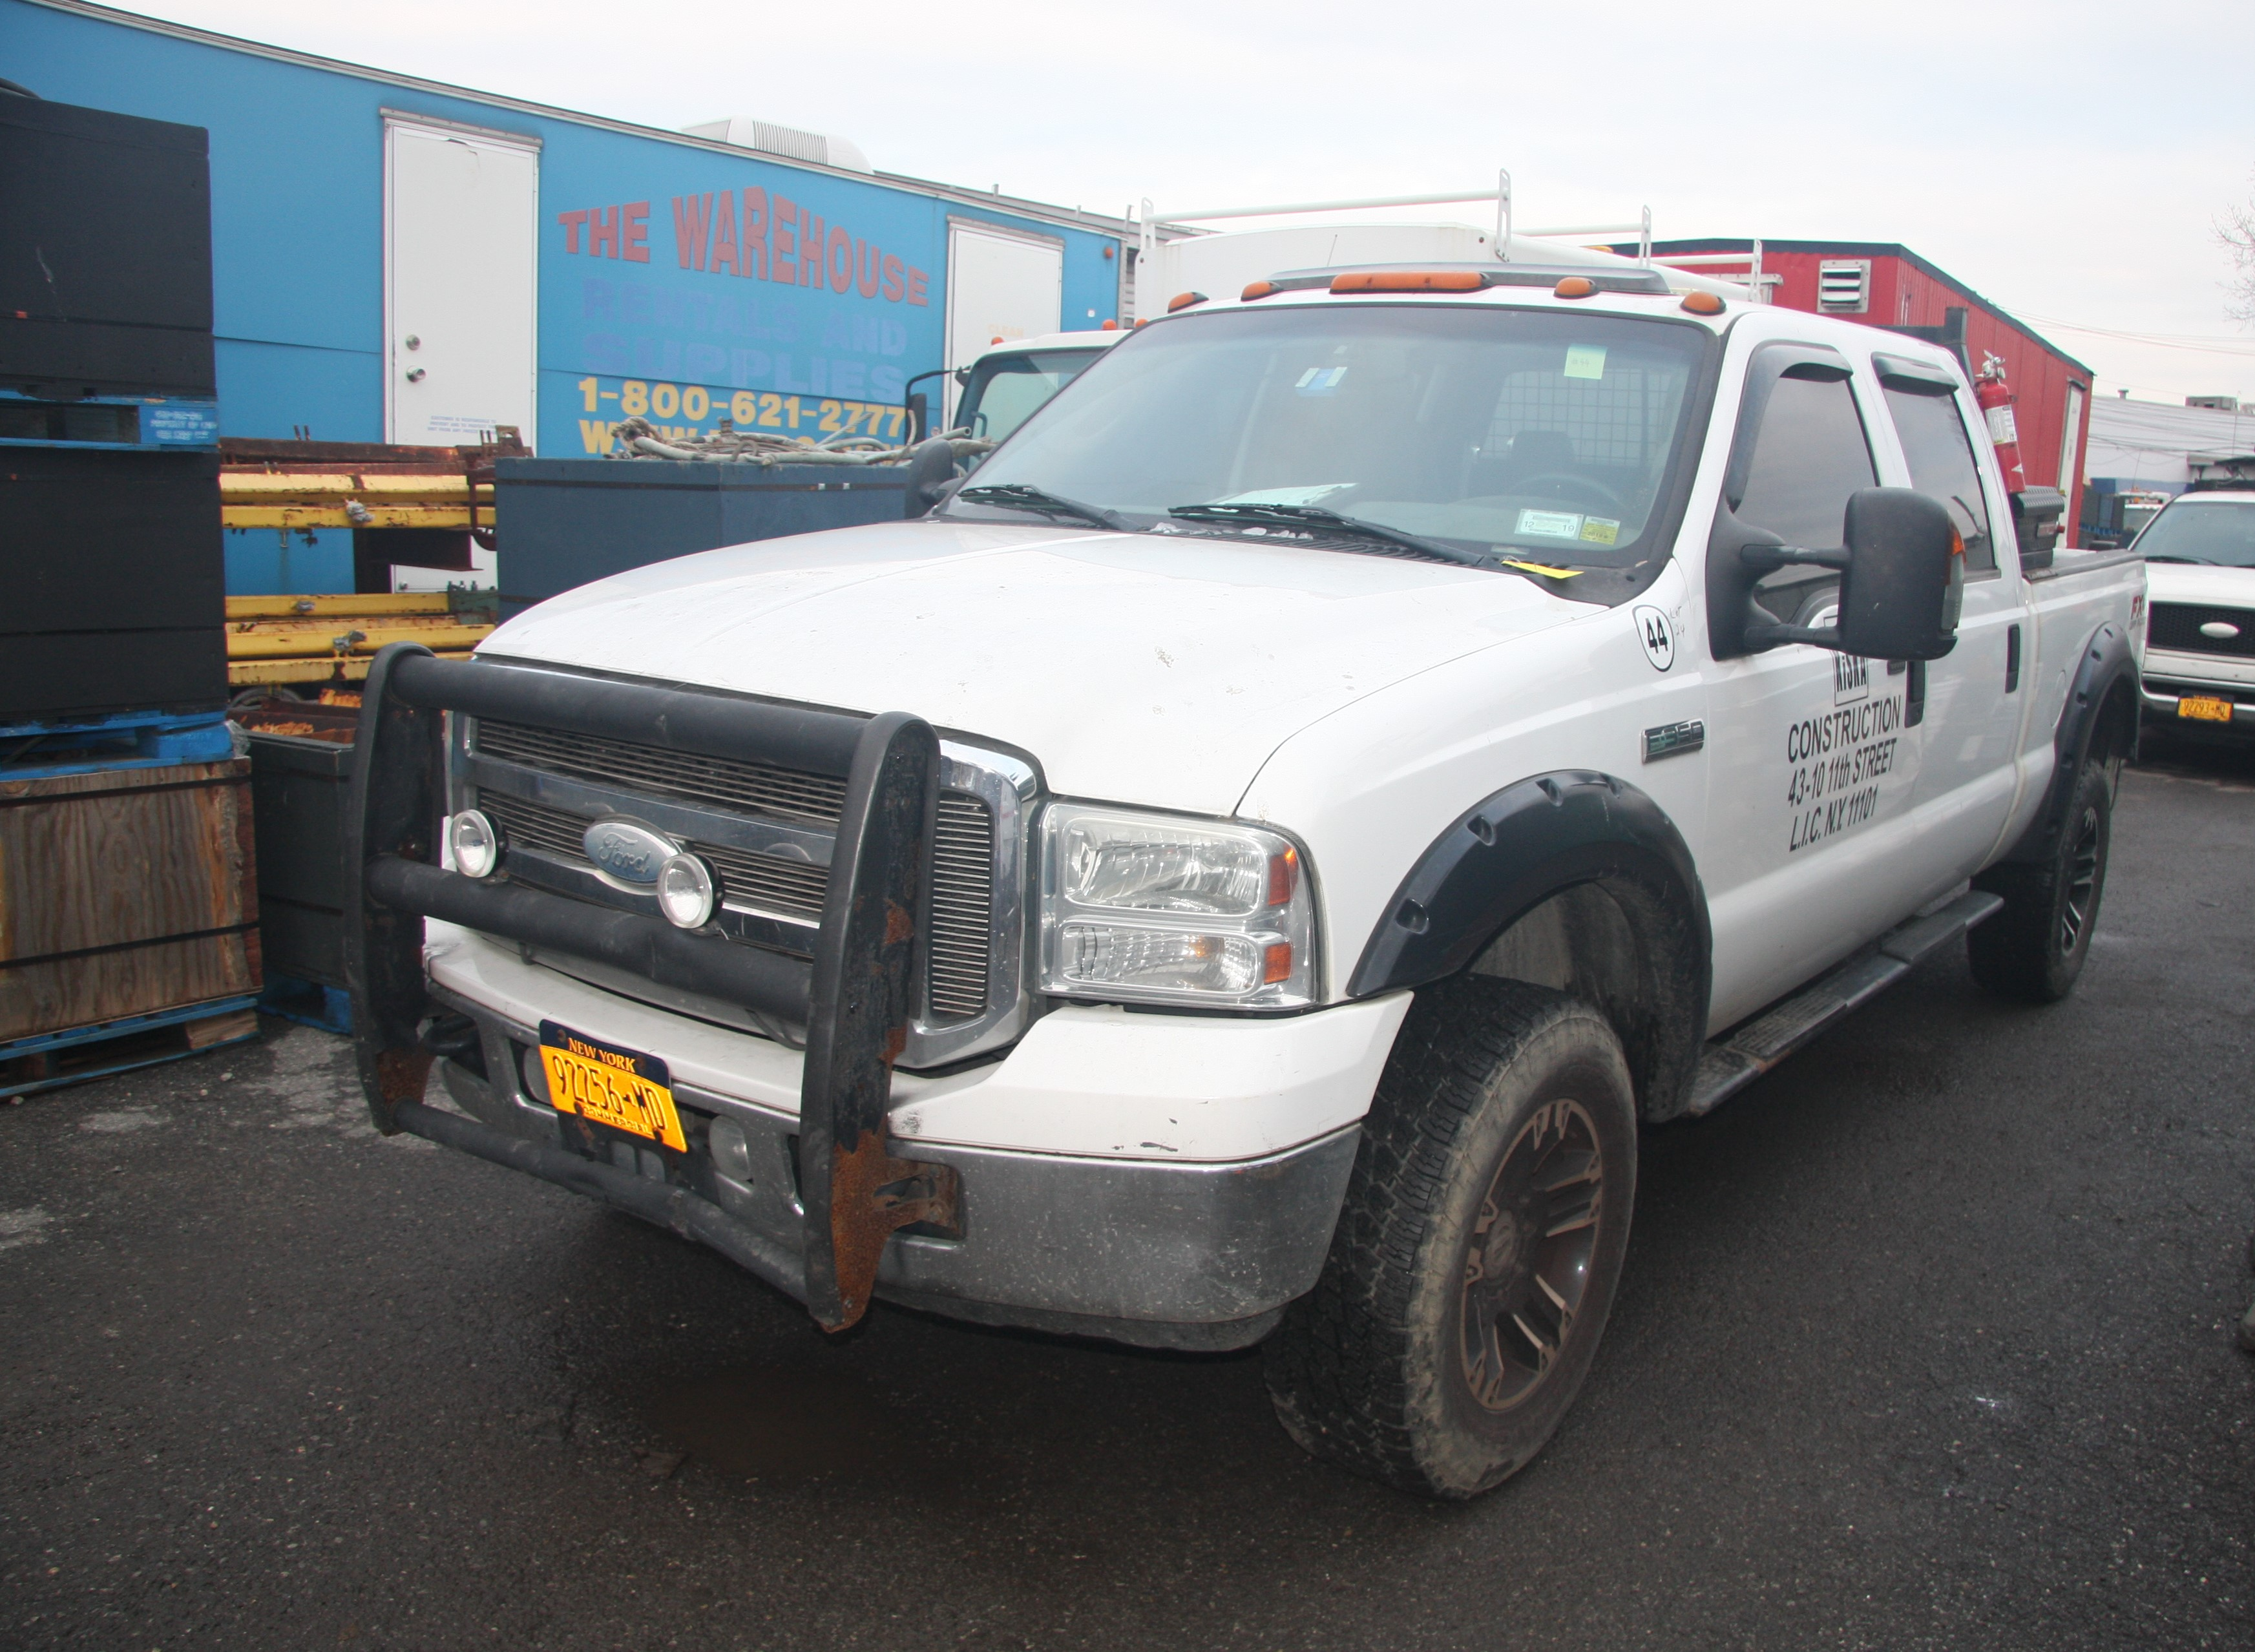 Lot 38 - 2007 FORD F-350 LARIAT SUPER DUTY FX OFF-ROAD PICKUP CREW CAB TRUCK, 4-WHEEL DRIVE, WITH POWER